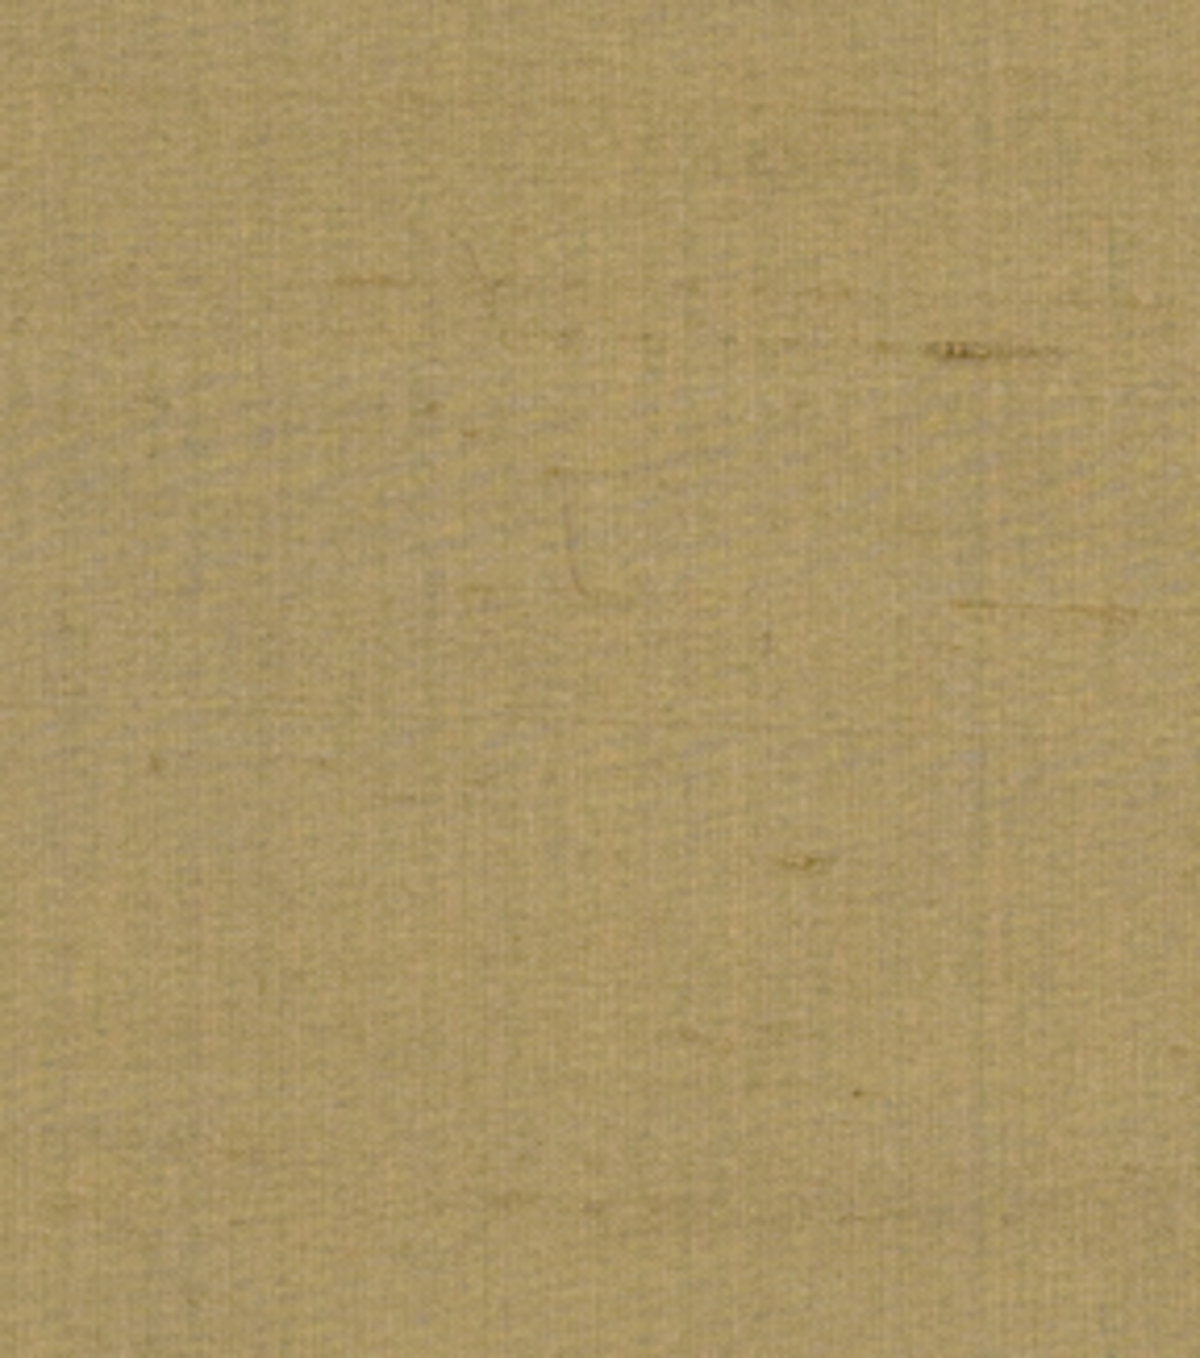 Home Decor 8\u0022x8\u0022 Fabric Swatch-Signature Series Duppioni Silk Khaki